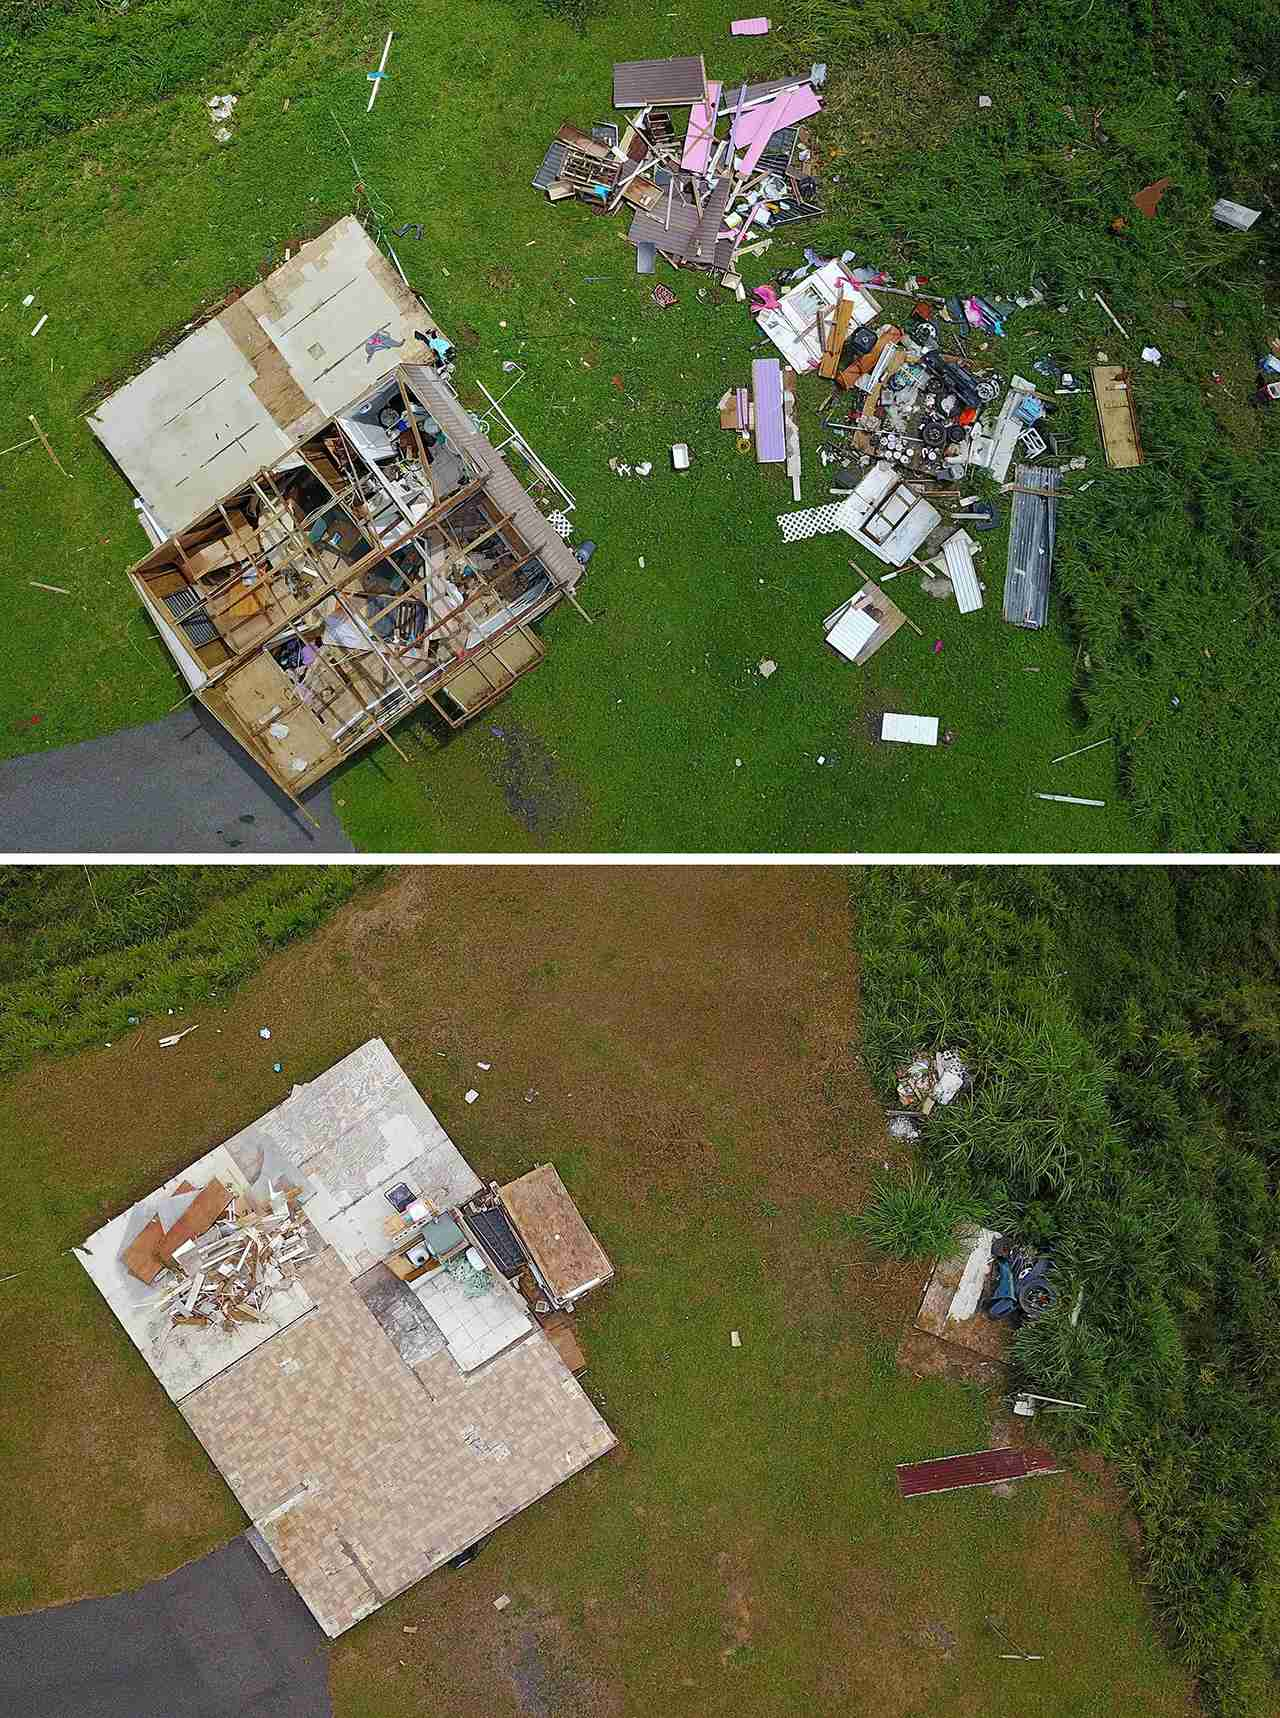 A house destroyed by hurricane winds in Barranquitas, southwest of San Juan, Puerto Rico, on September 24, 2017 following the passage of Hurricane Maria and (below) a house that was destroyed by hurricane winds is demolished after the family living in the house were unable to fix it six months after the passing of Hurricane Maria in Barranquitas, Puerto Rico, on March 18, 2018. (Photo by RICARDO ARDUENGO/AFP/Getty Images)